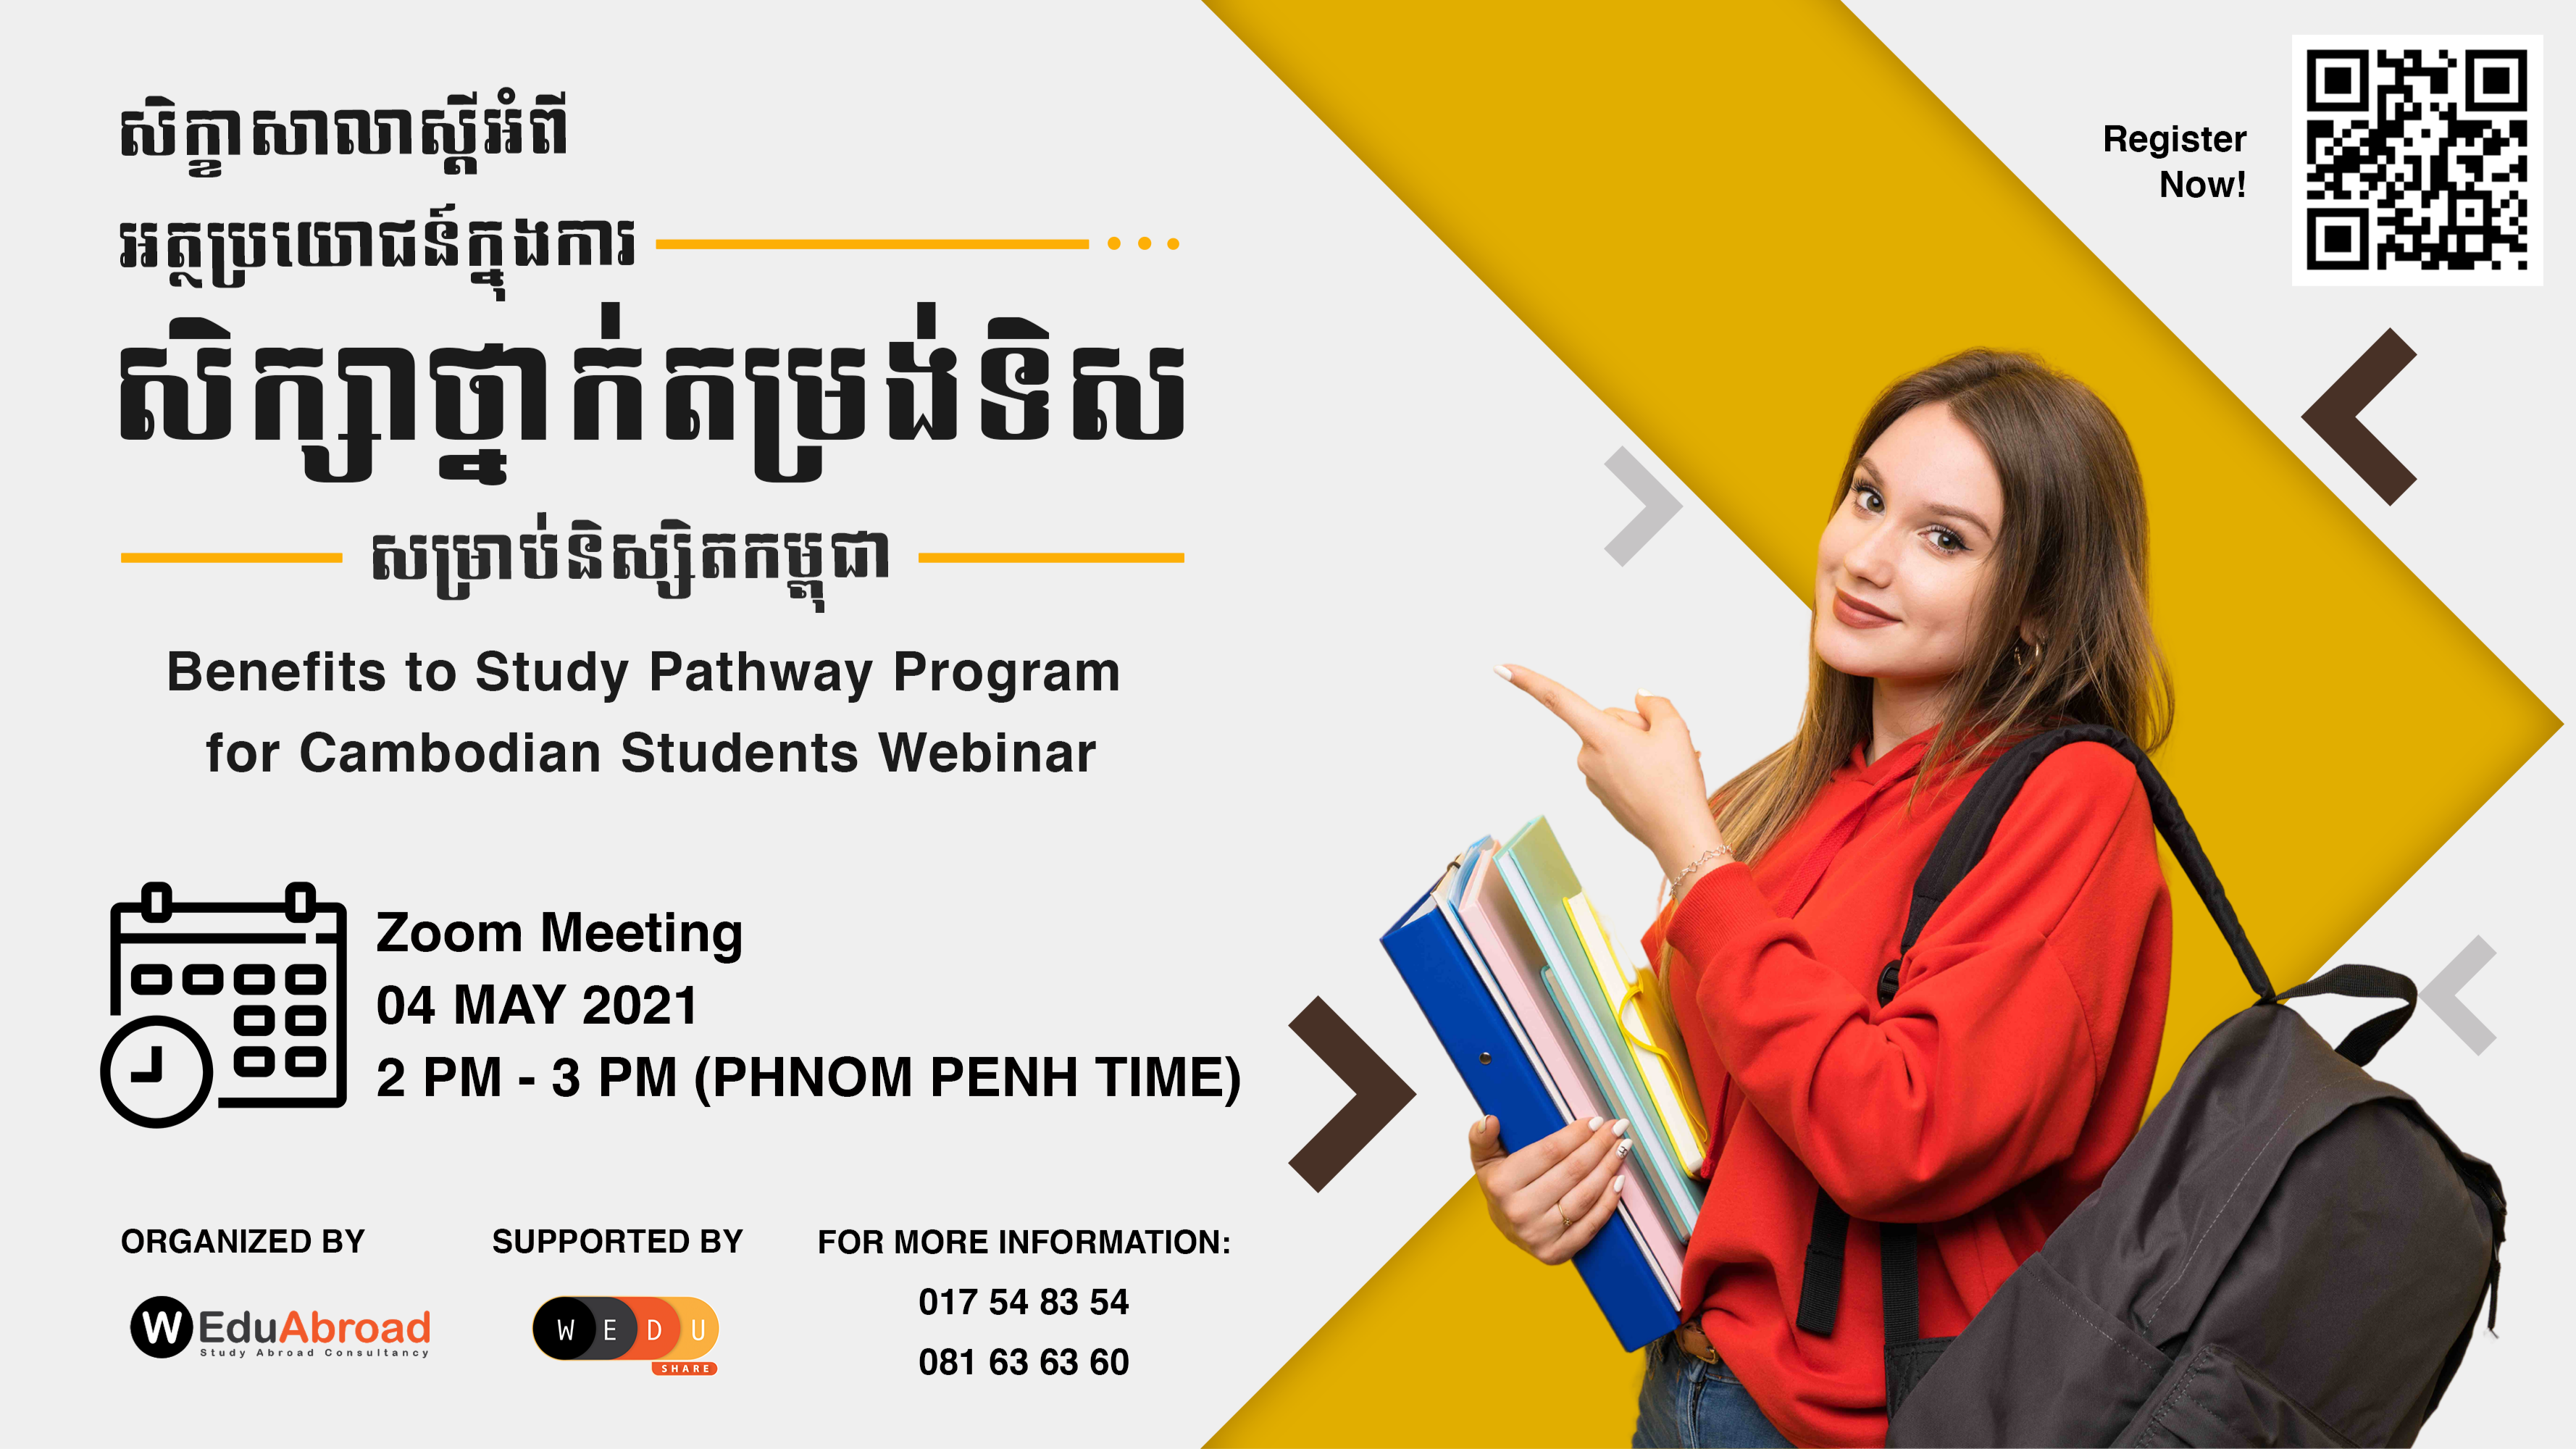 Benefits to Study Pathway Program for Cambodian Students Webinar